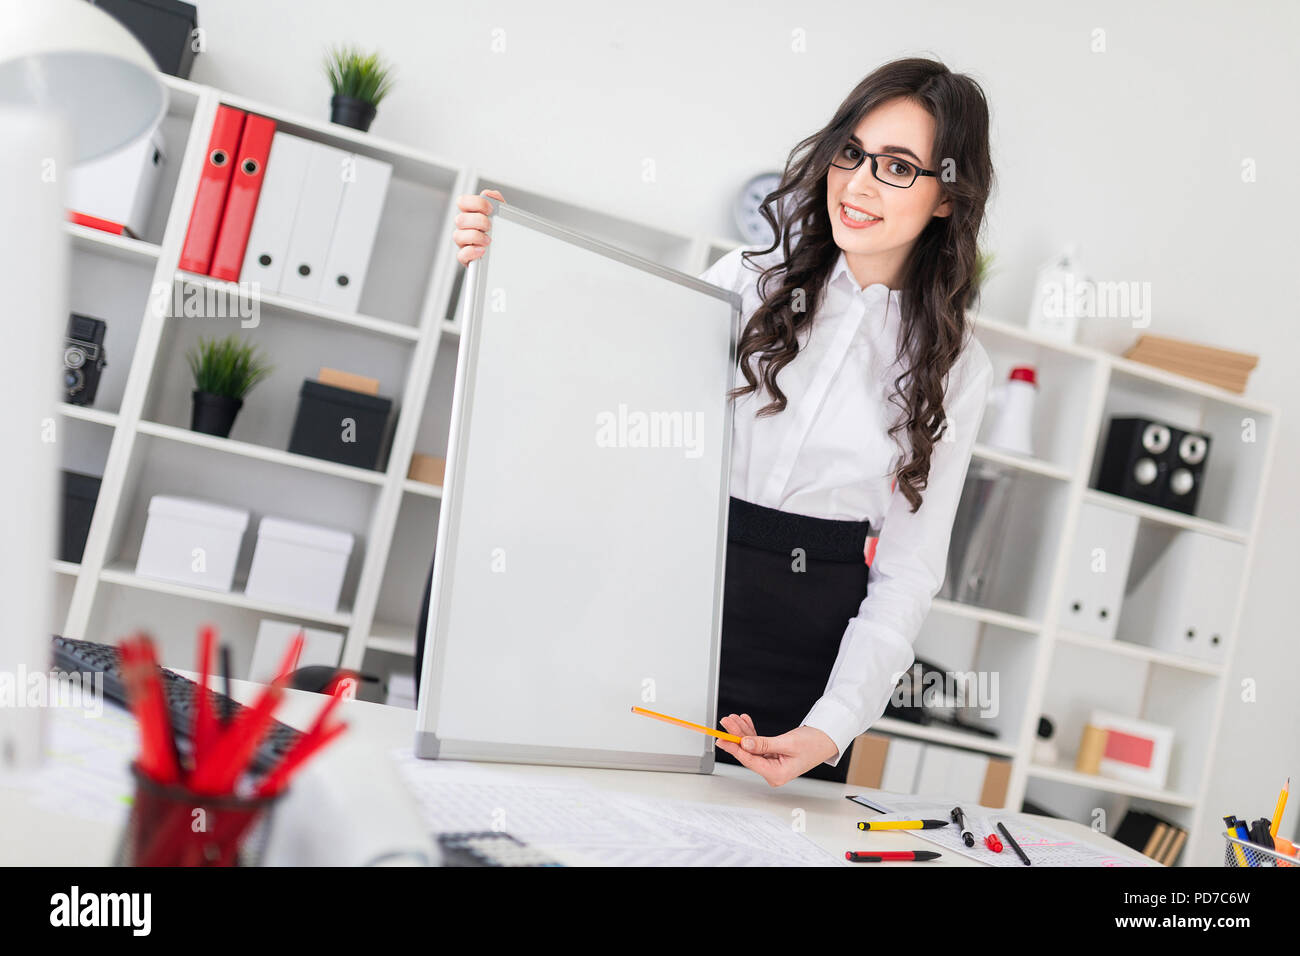 Beautiful young girl stands near an office desk and points with a pen on an empty board. - Stock Image